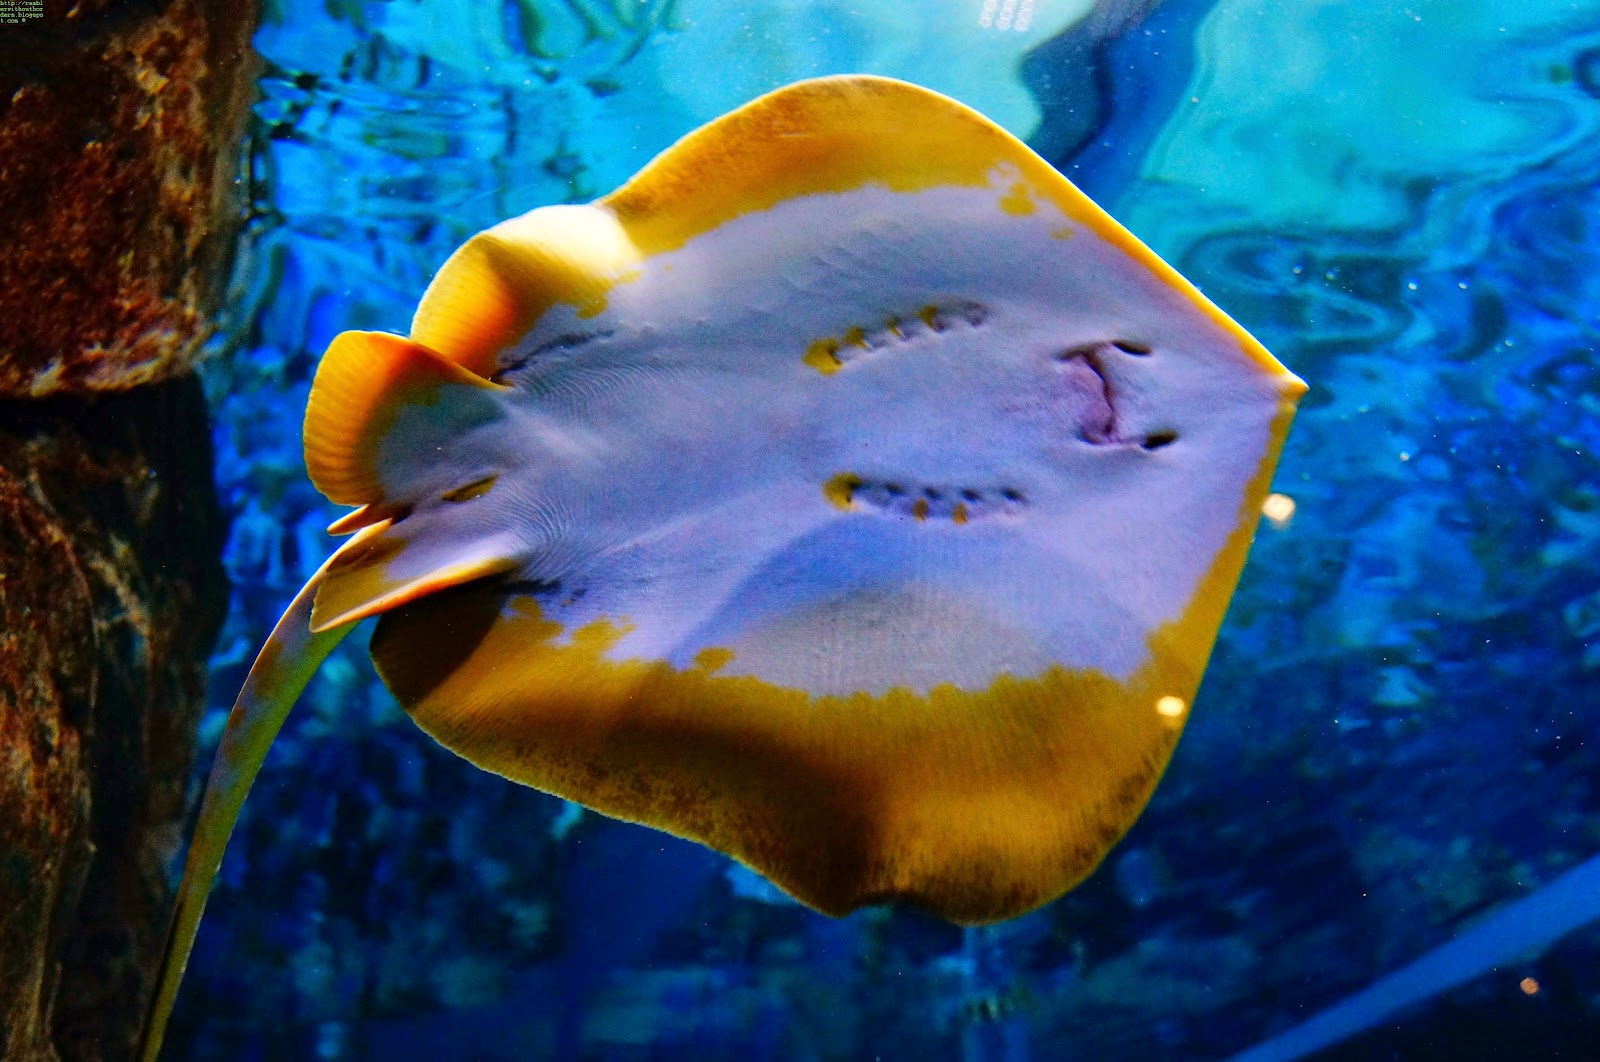 Stingray, S.E.A. Aquarium, Sentosa, Singapore